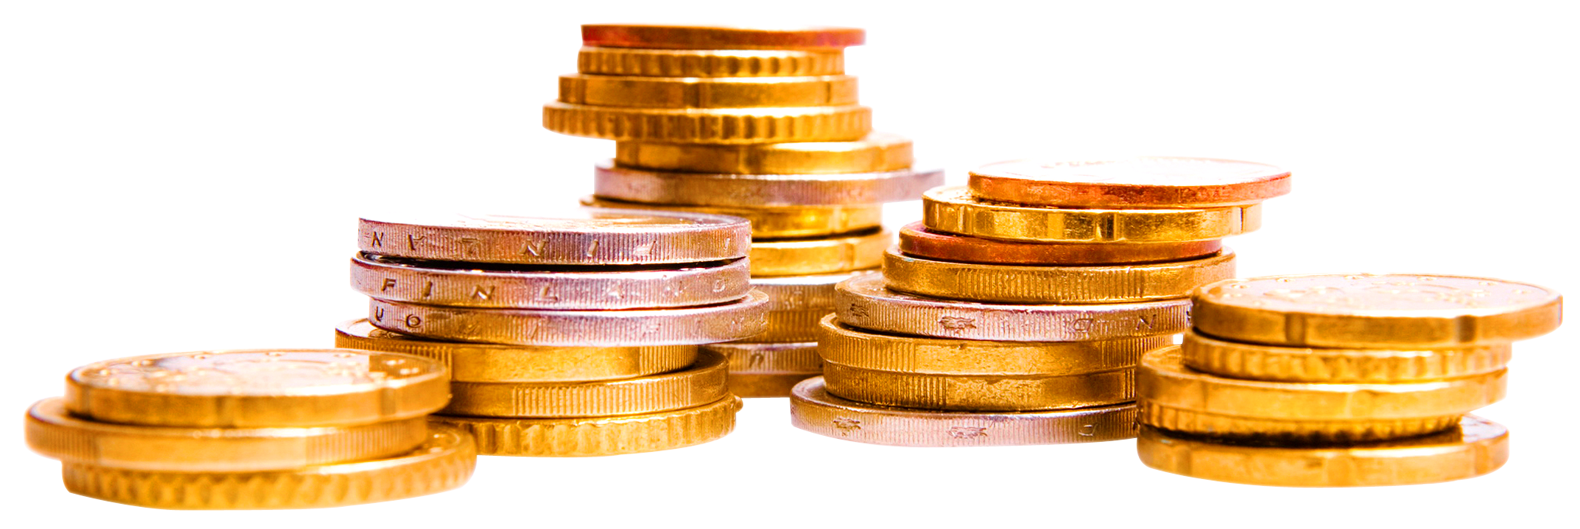 Coins HD PNG 210x70 - Coins PNG Transparent Free Images - Coins PNG HD